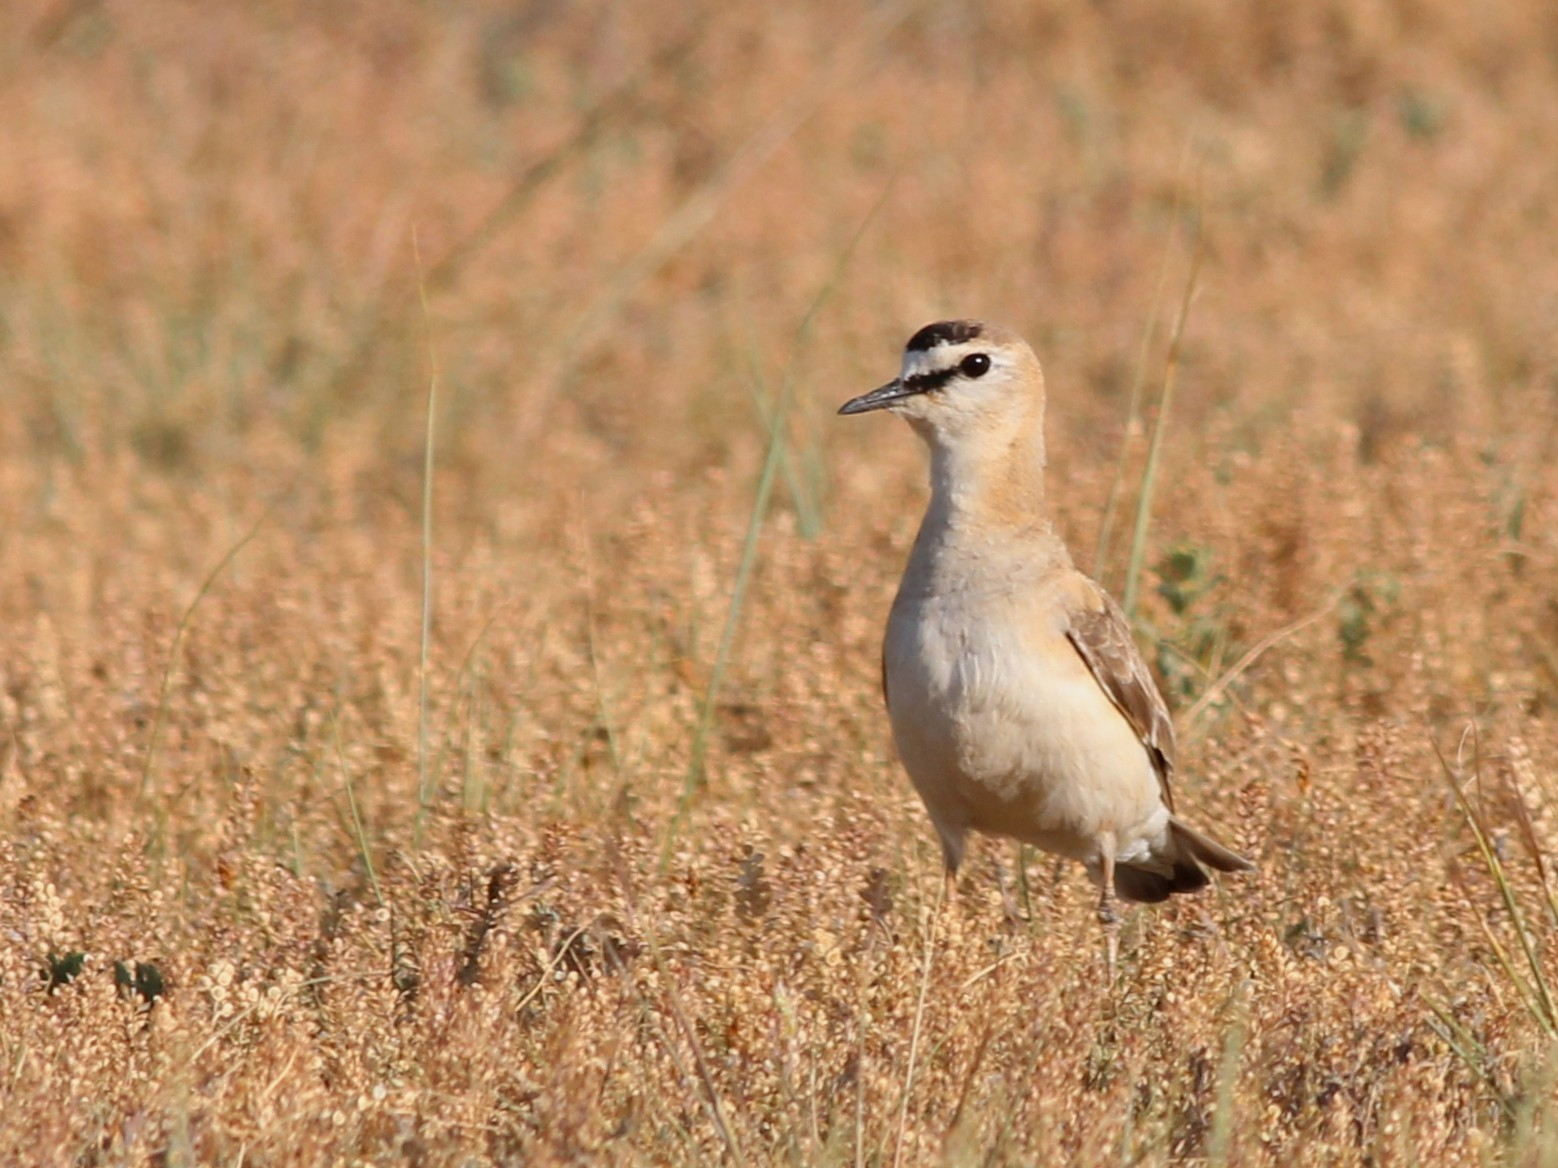 Mountain Plover - Shawn Billerman